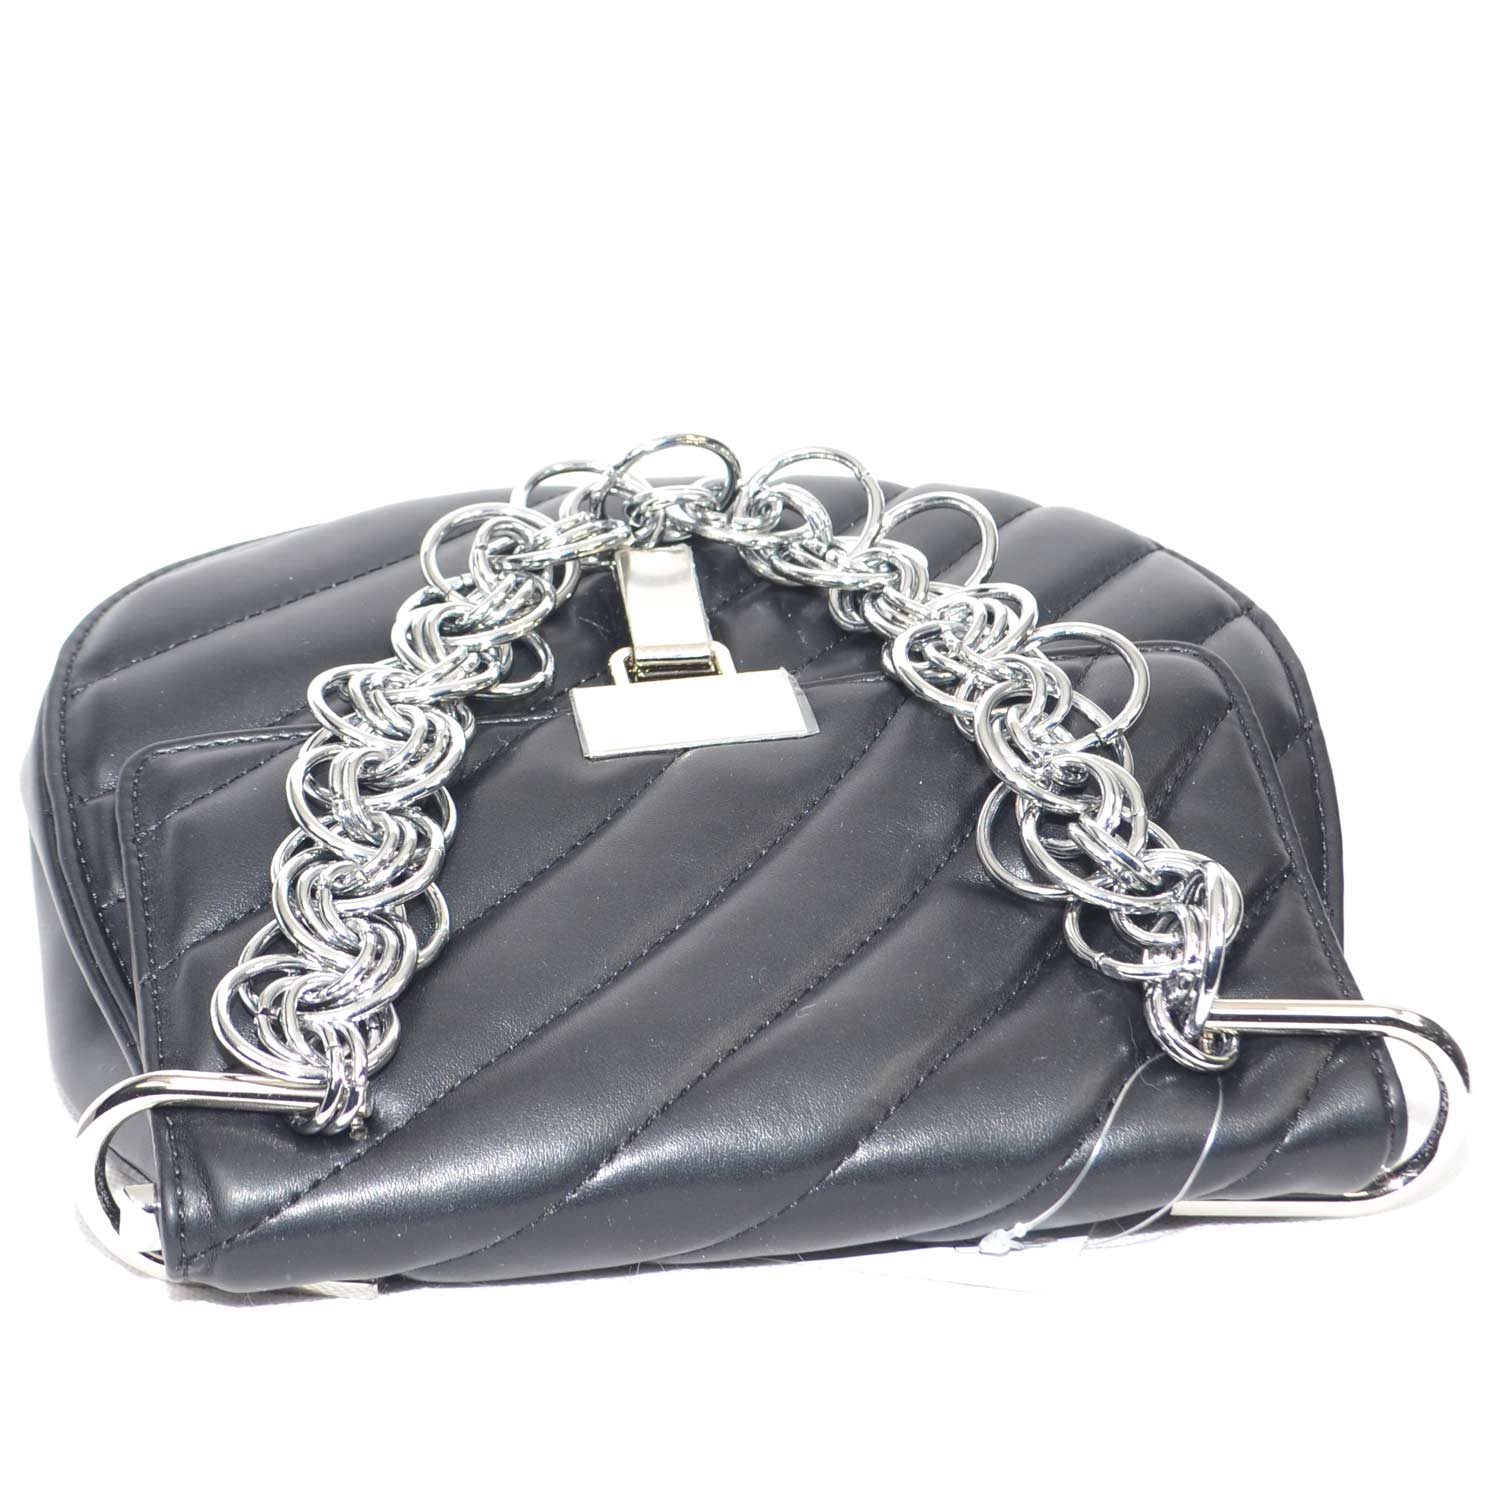 Borsa donna nera con catena moda glamour made in italy.